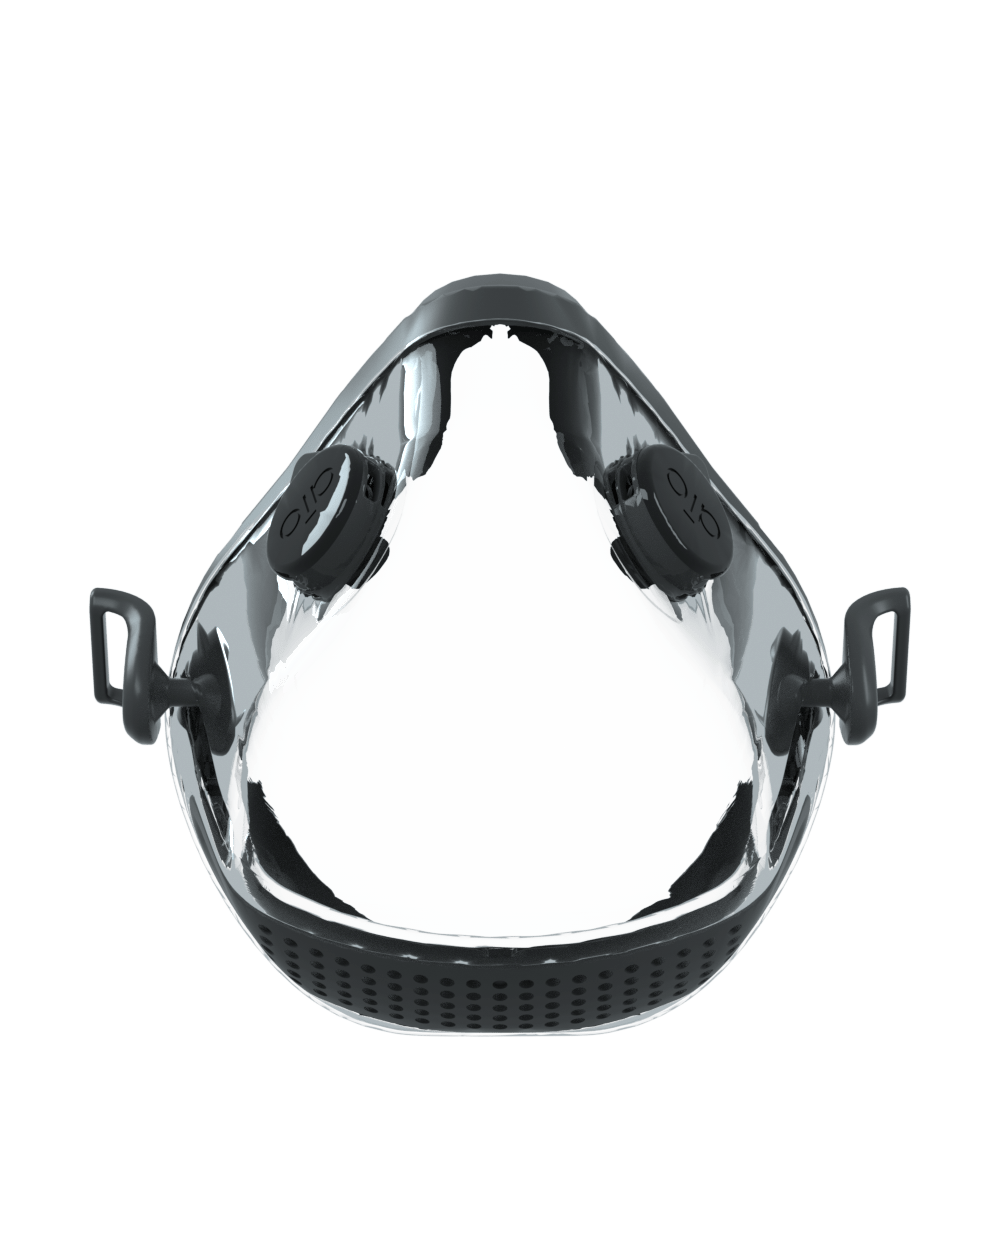 AIO Mask Basic - black front view with valves - transparent mouth and nose cover